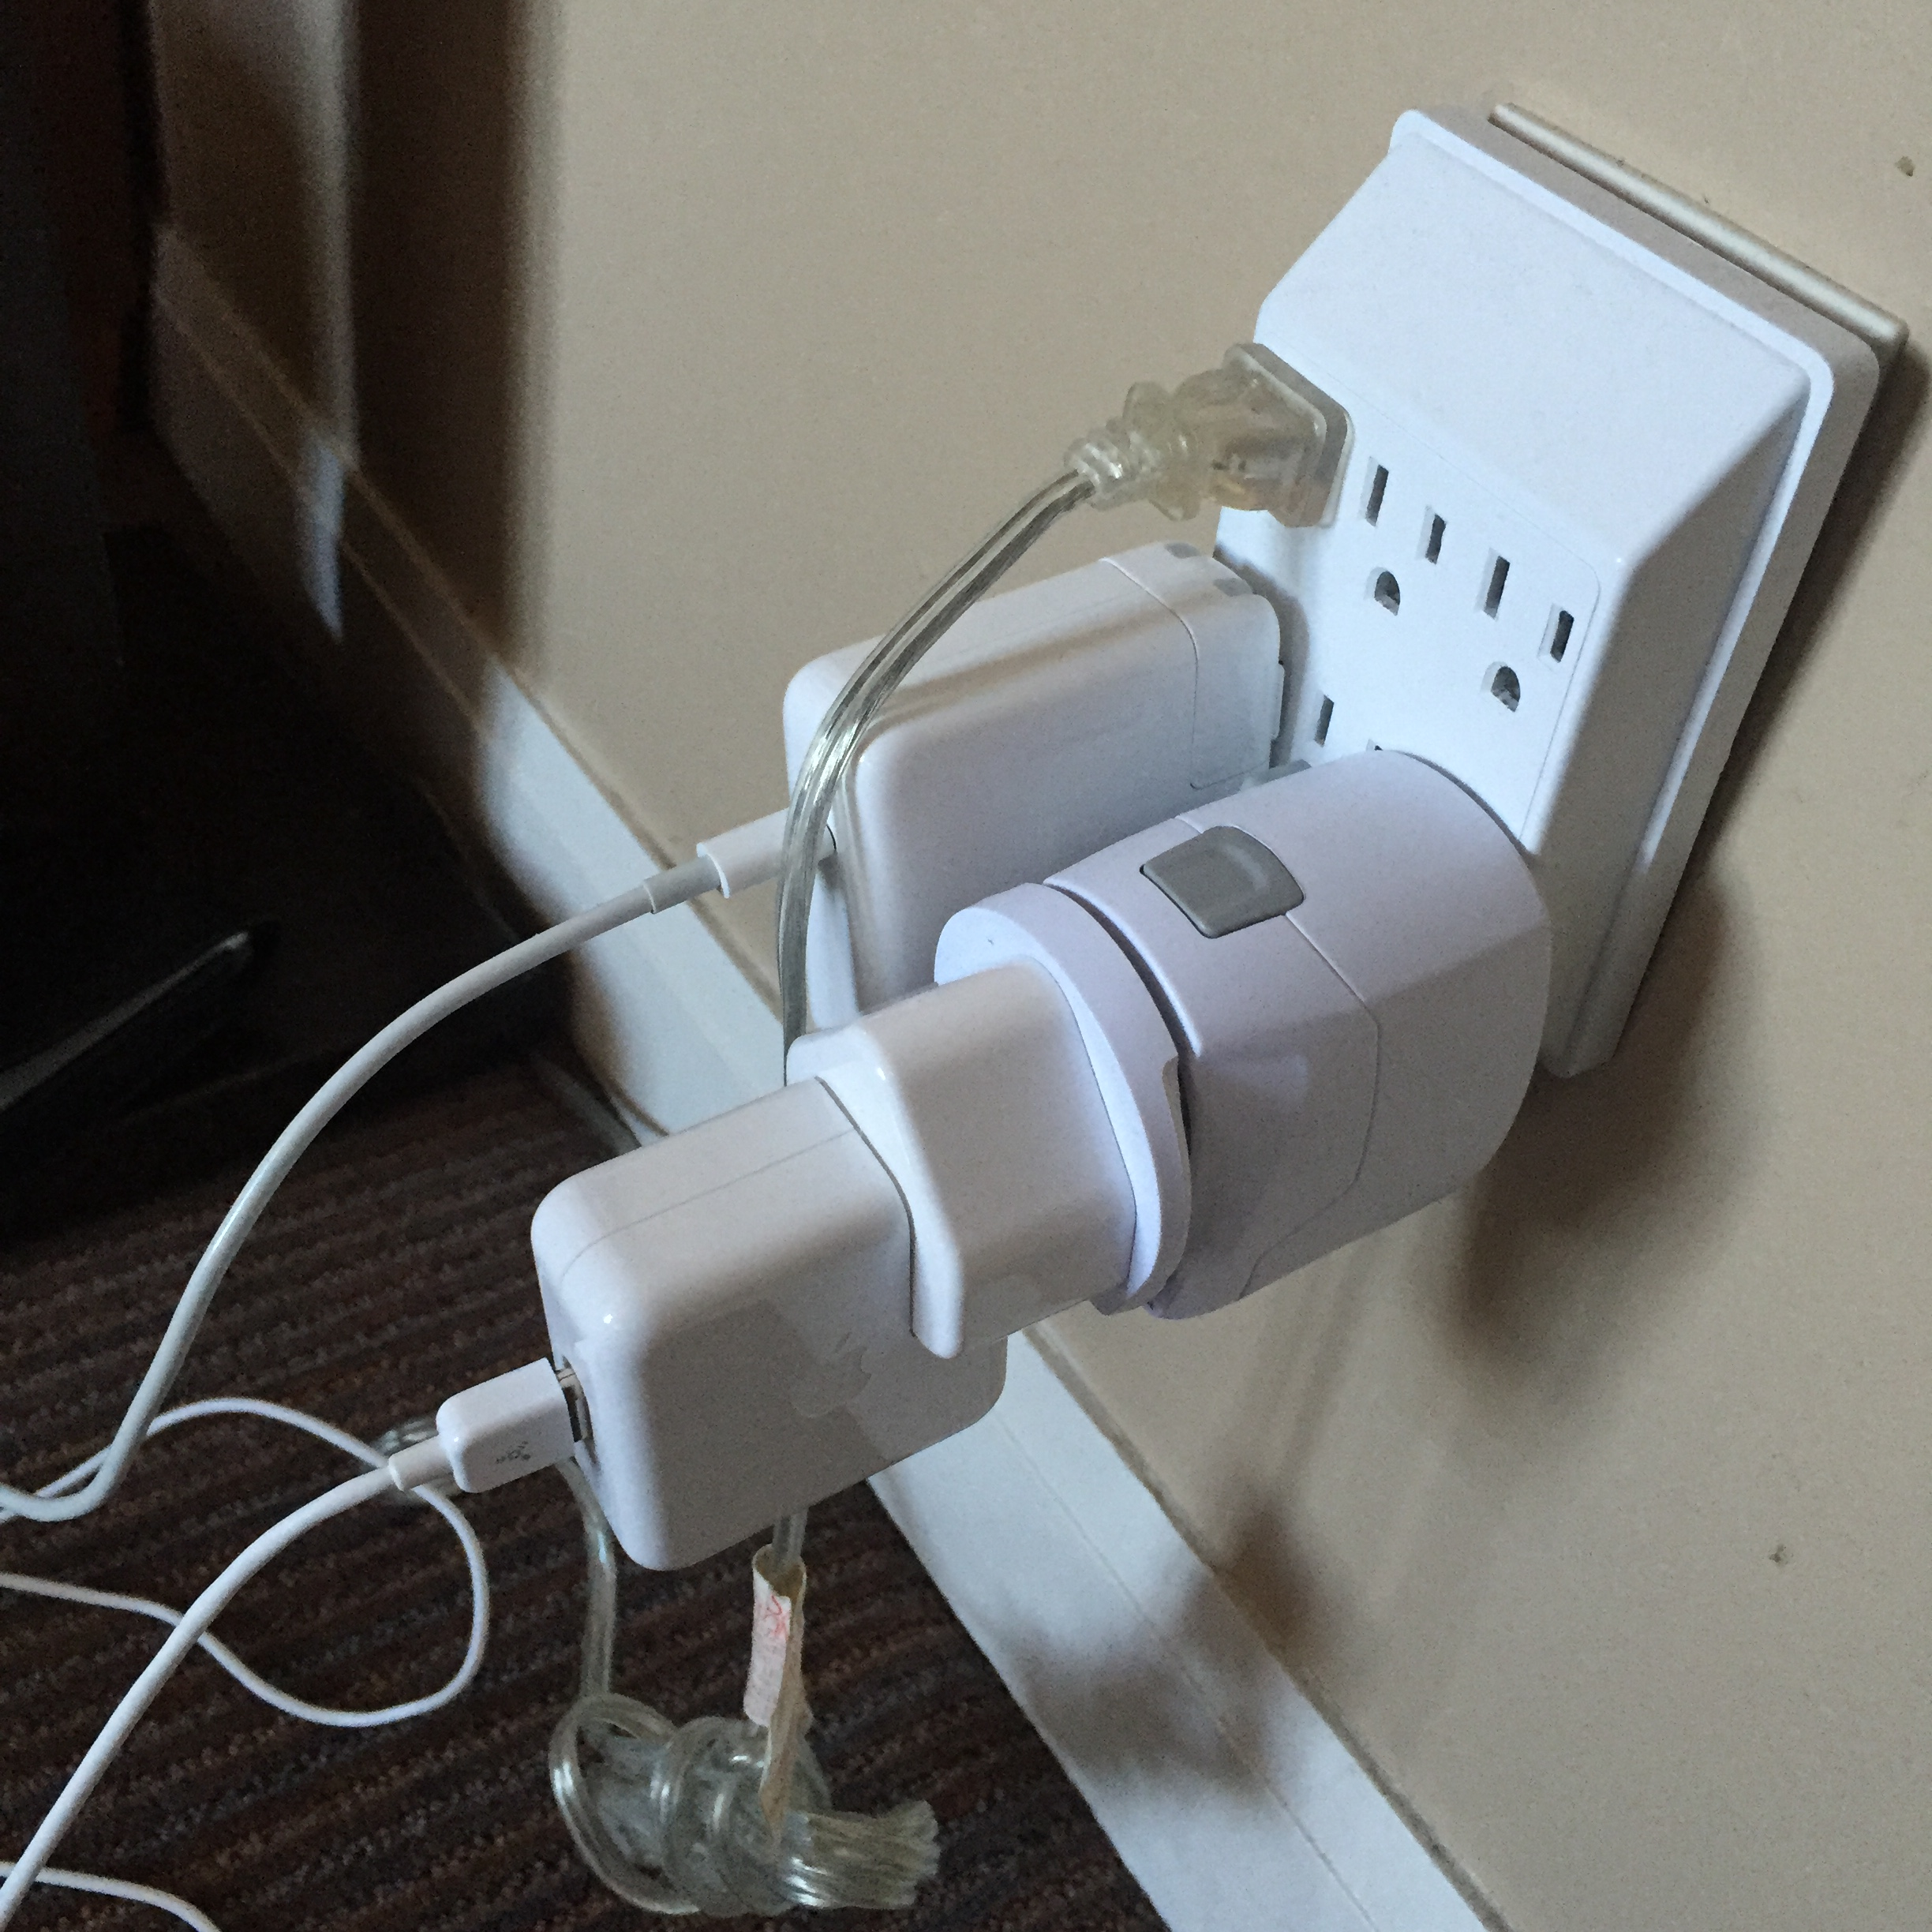 ipod charger